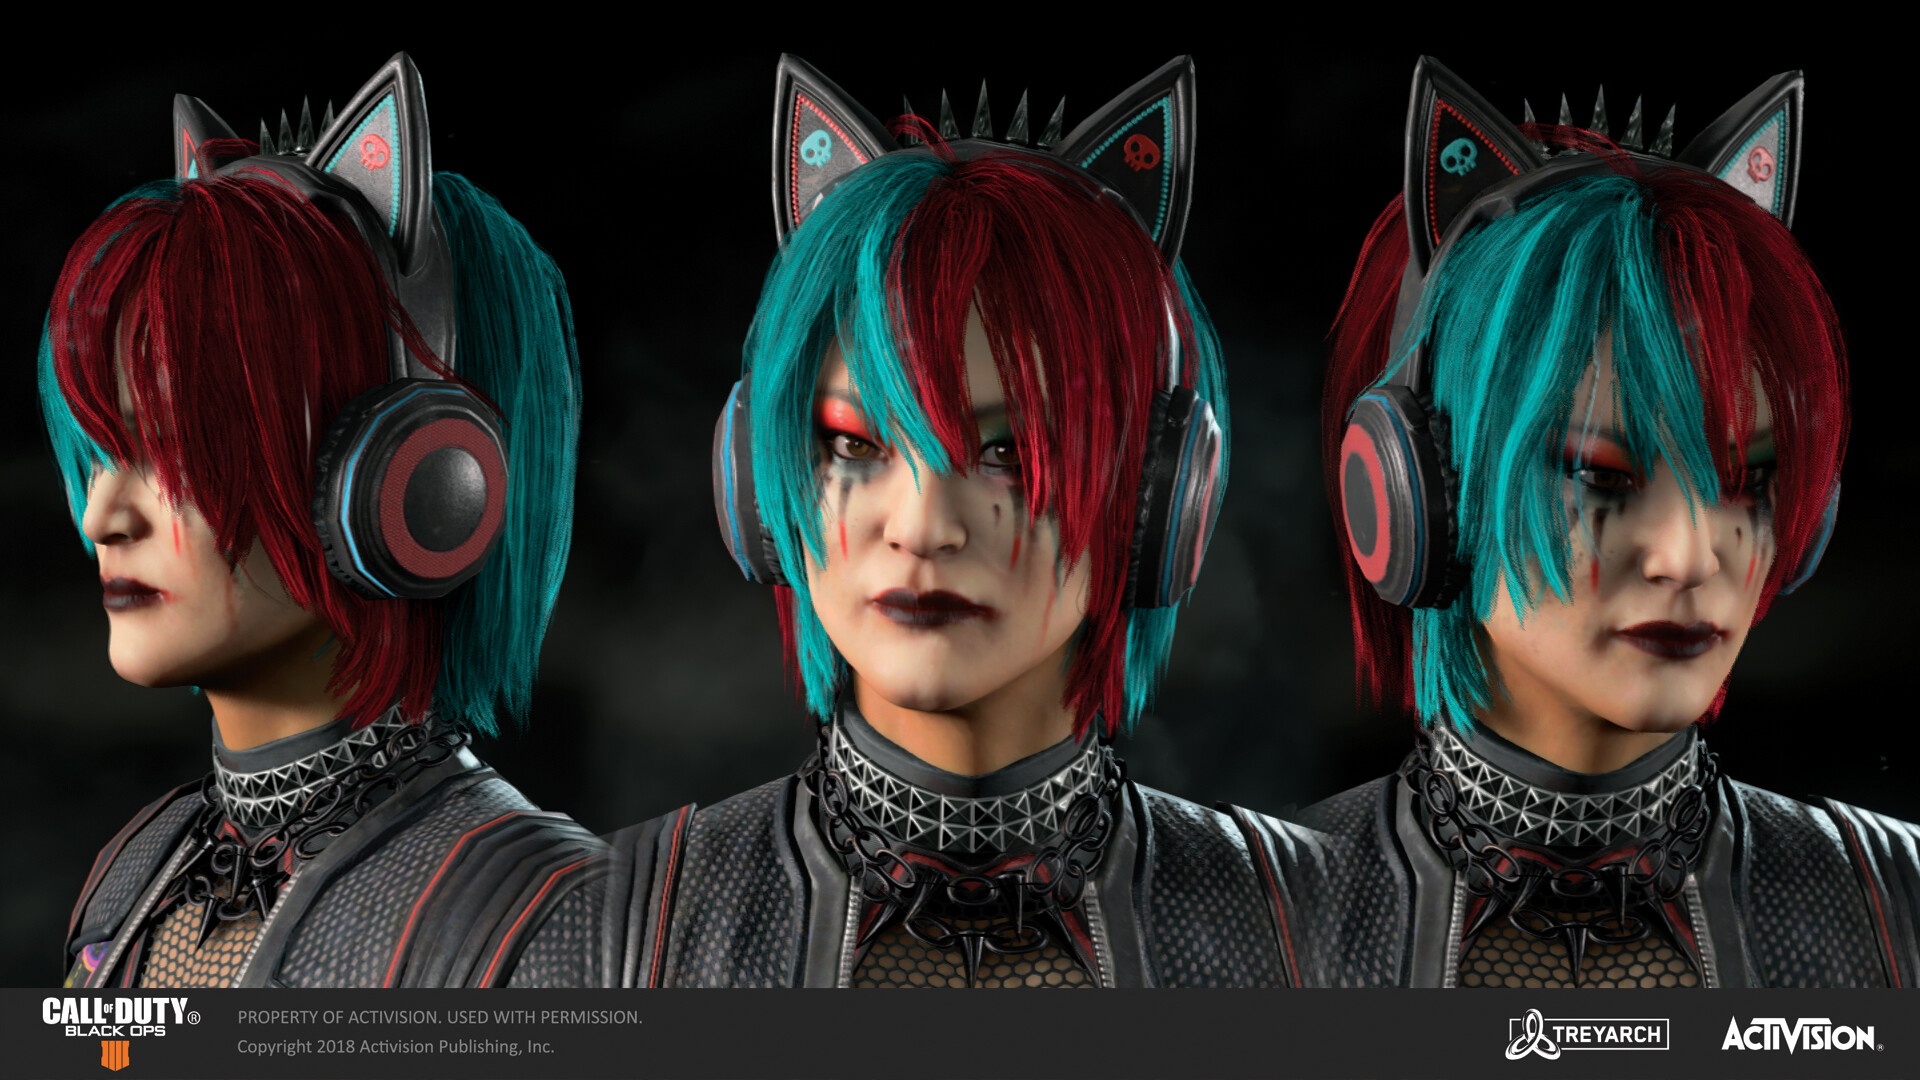 Textured Seraph's warpaint for her 'Kitty Six' skin in the 'Dark Divide' DLC. Body model made by our external partners at RedHotCG, cyberarm modeled by Yaw Chang,  hair by Jason Anh, and the head was sculpted by Anh Nguyen. Costume designed by Yangtian Li